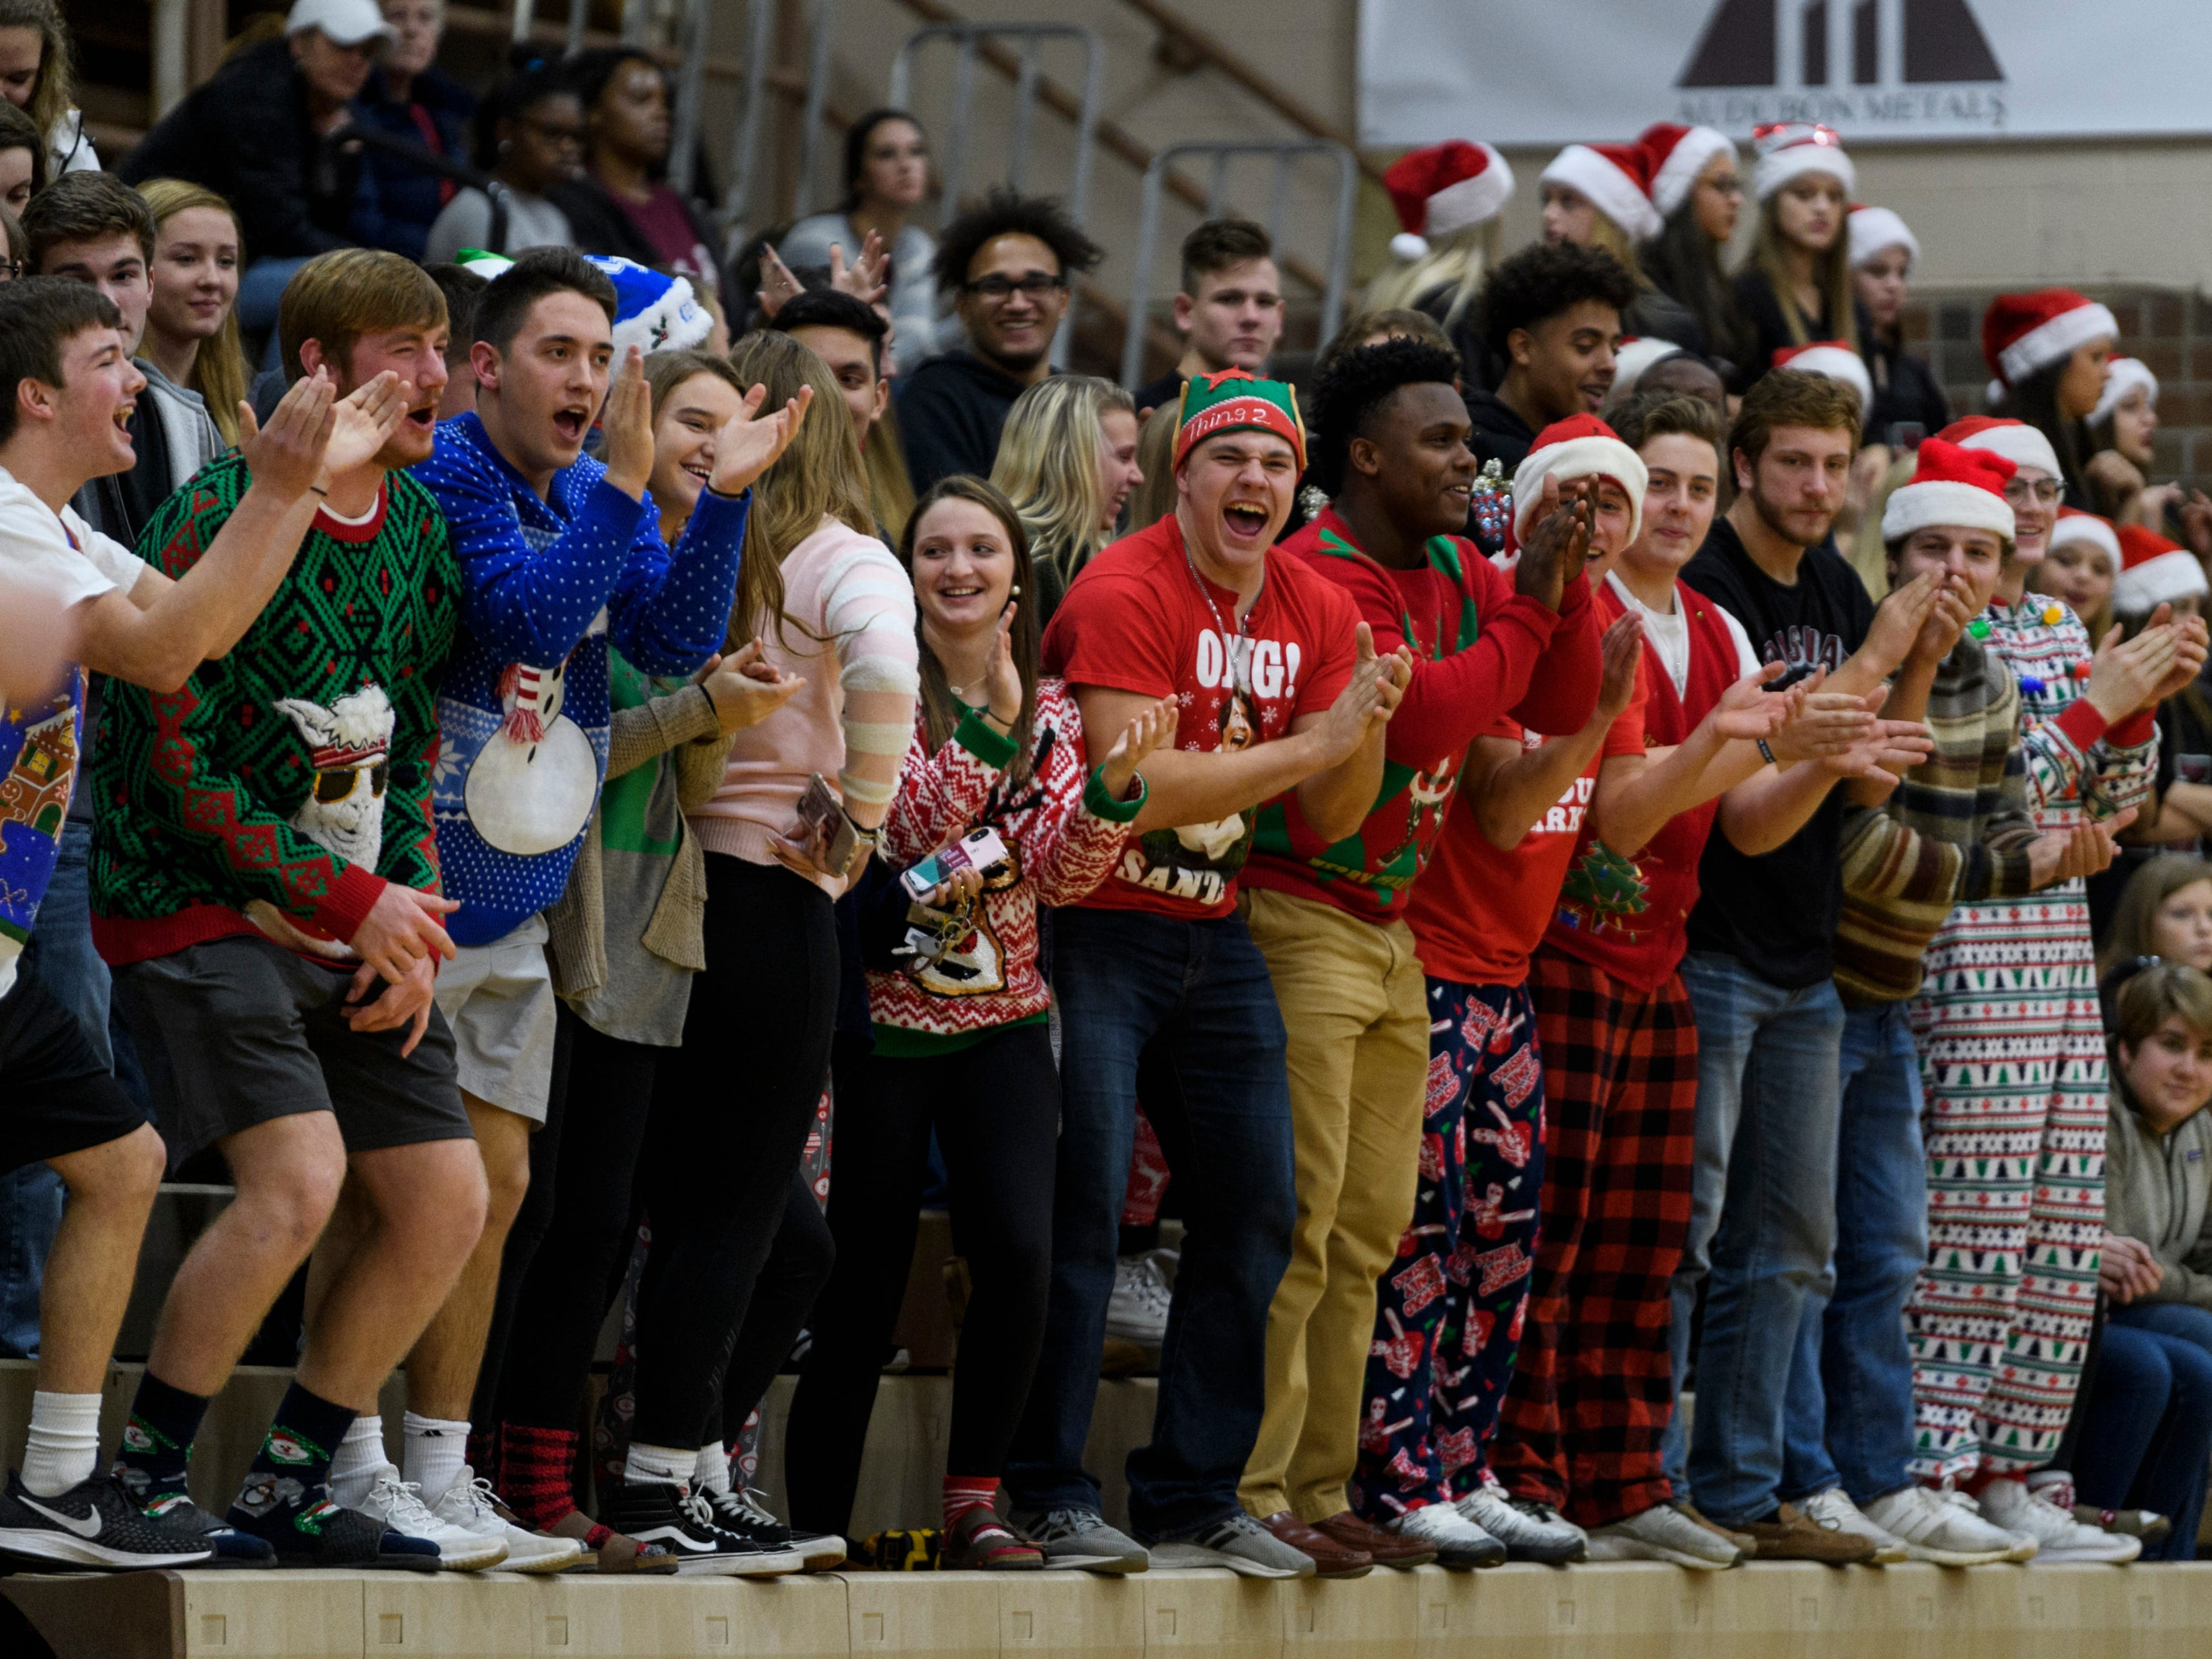 The Henderson County Colonels student section cheers loudly as their team takes on the Crittenden County Rockets at Henderson County High School in Henderson, Ky., Tuesday, Dec. 18, 2018. The team made 19 three-pointers, breaking a school record, and defeated the Rockets 88-52.